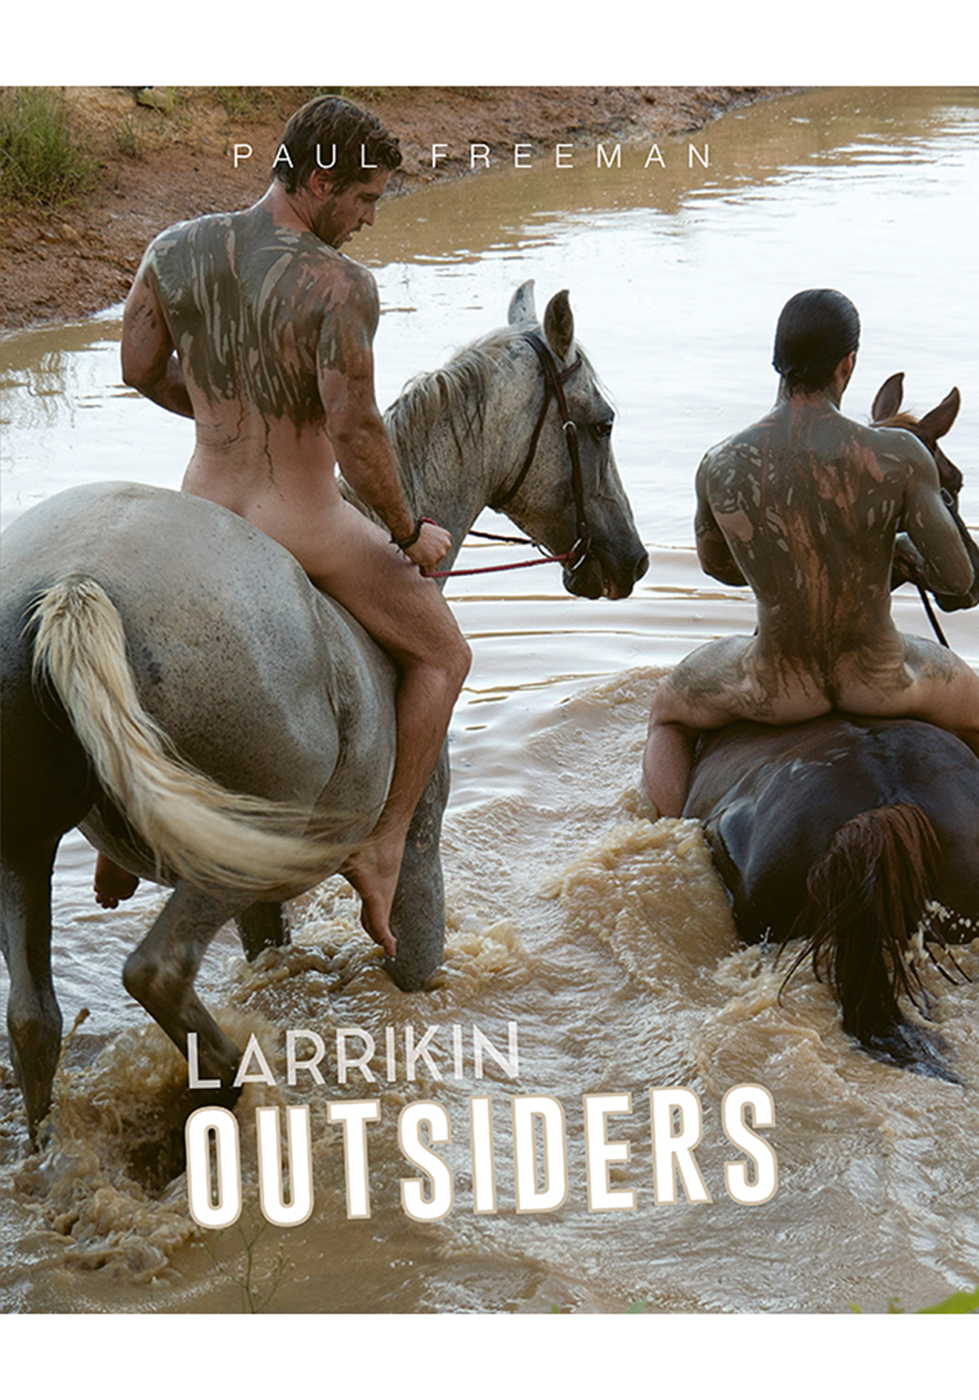 Paul Freeman | Larrikin Outsiders